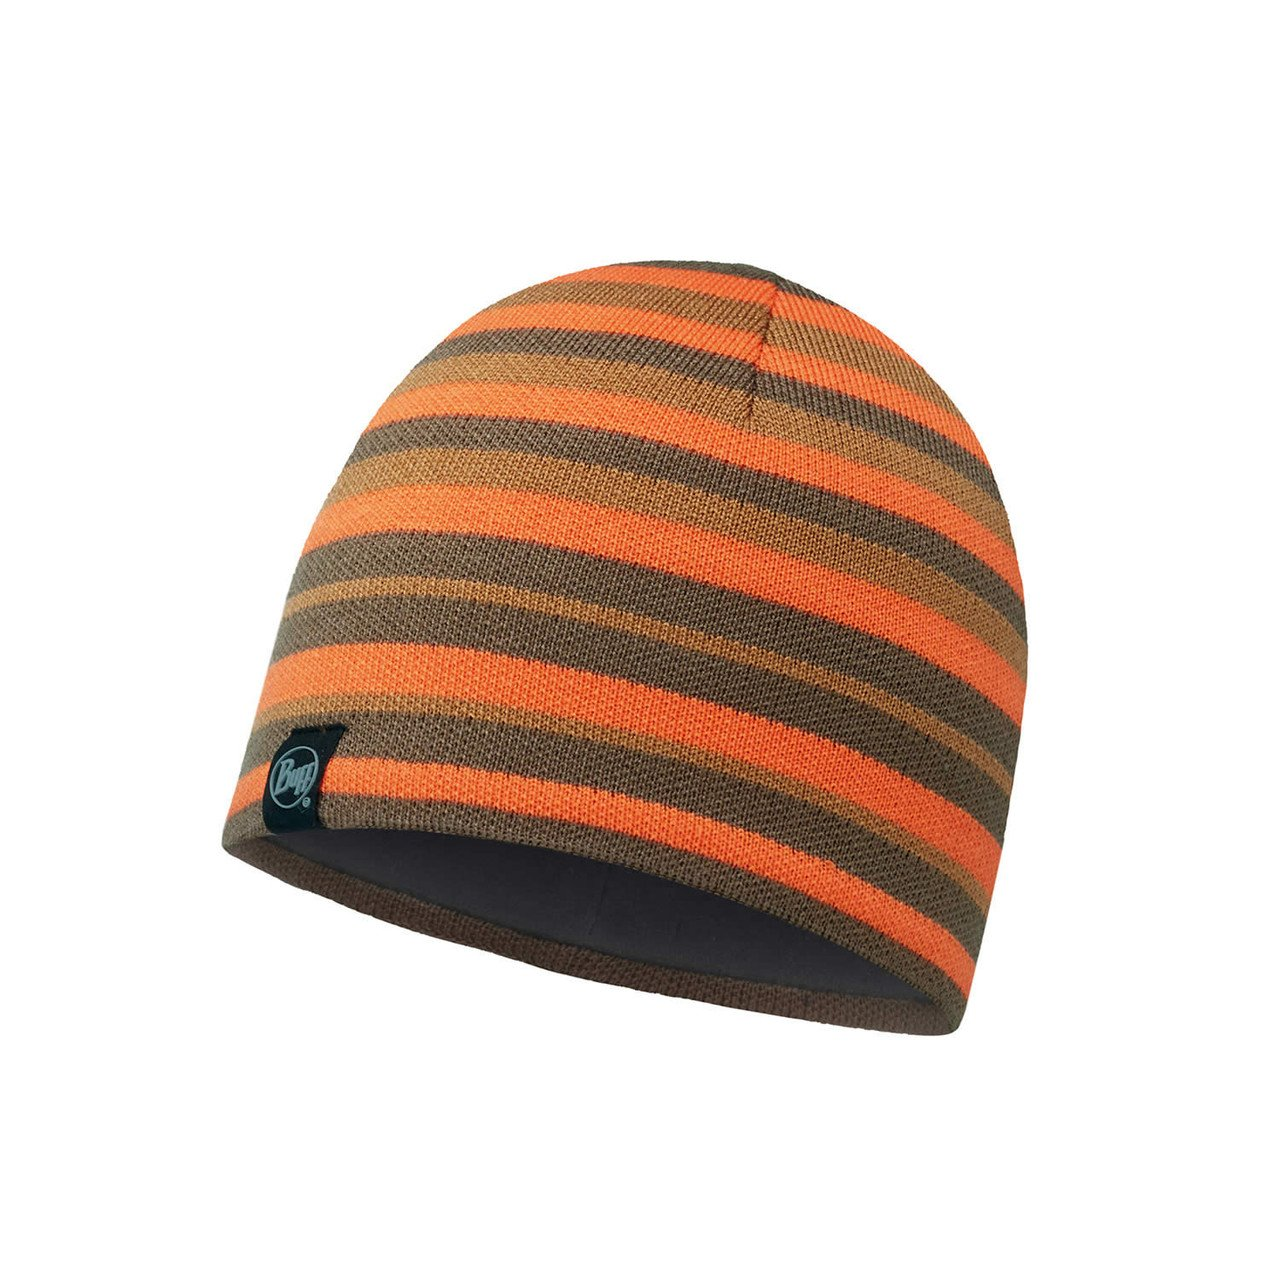 Шапка Buff - Knitted & Polar Hat Laki, Stripes Fossil (BU 113520.311.10.00)